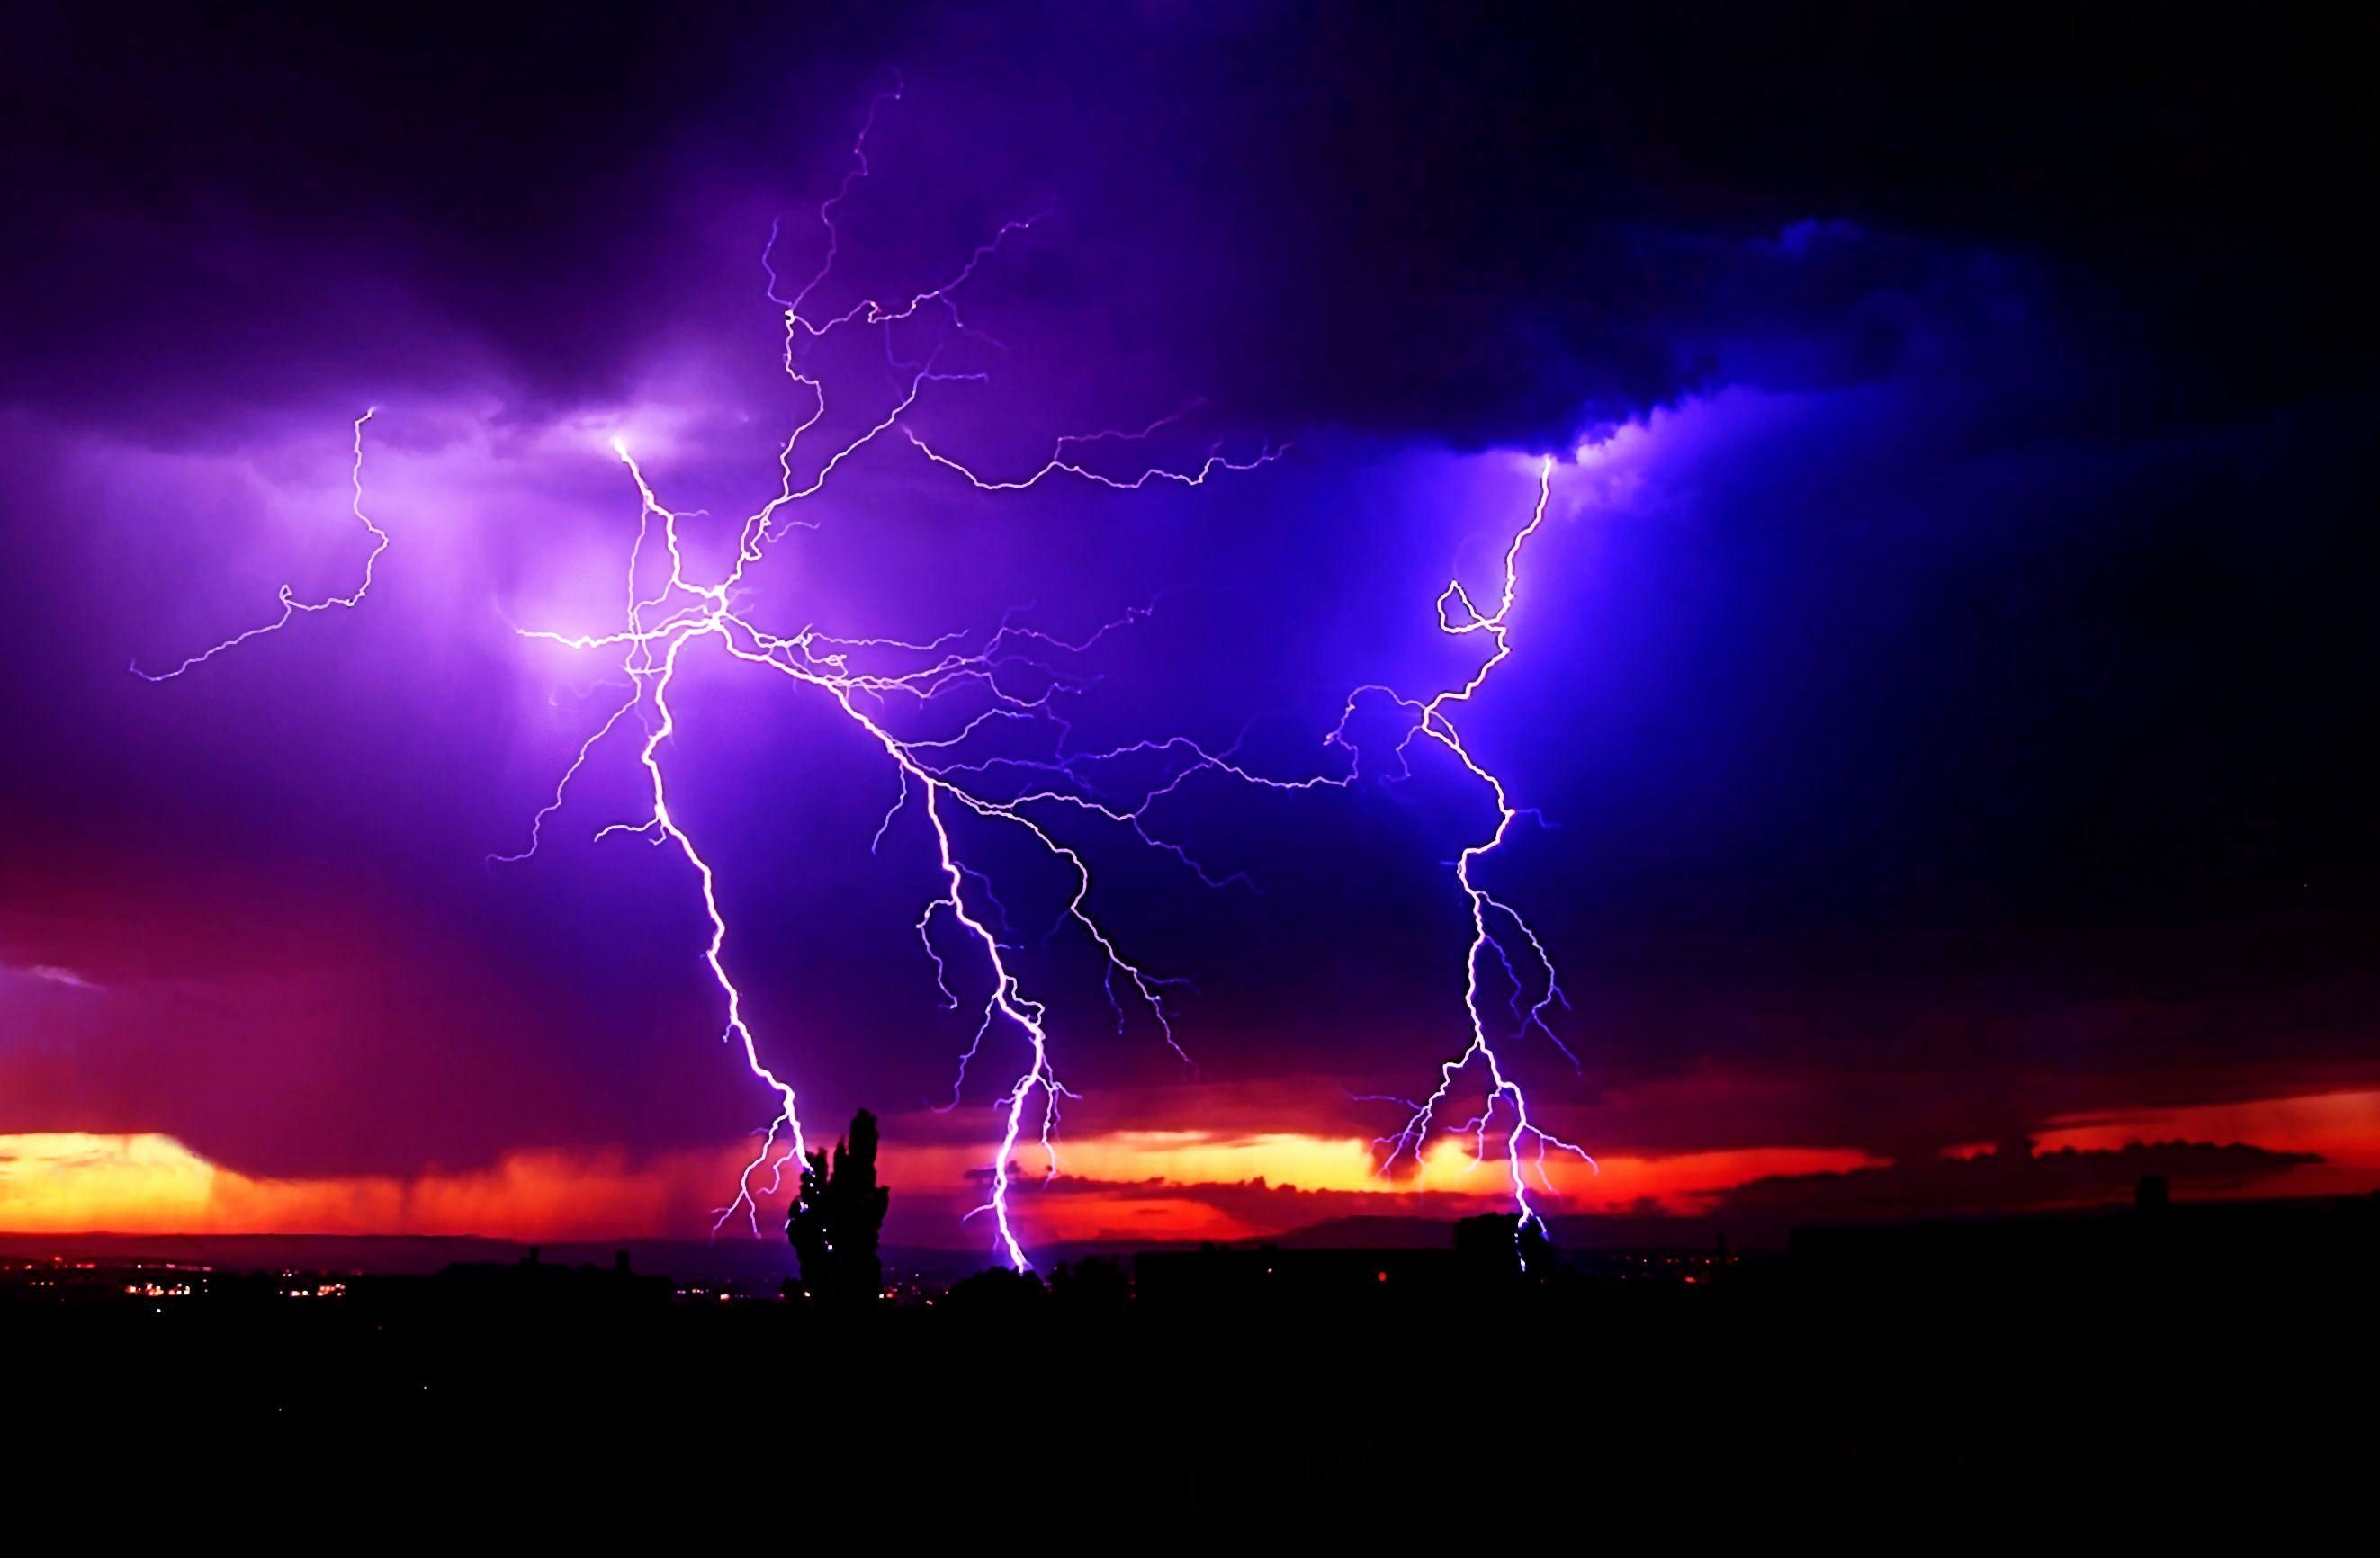 Lightning Backgrounds Unique Lightning Storm Wallpapers Wallpapers